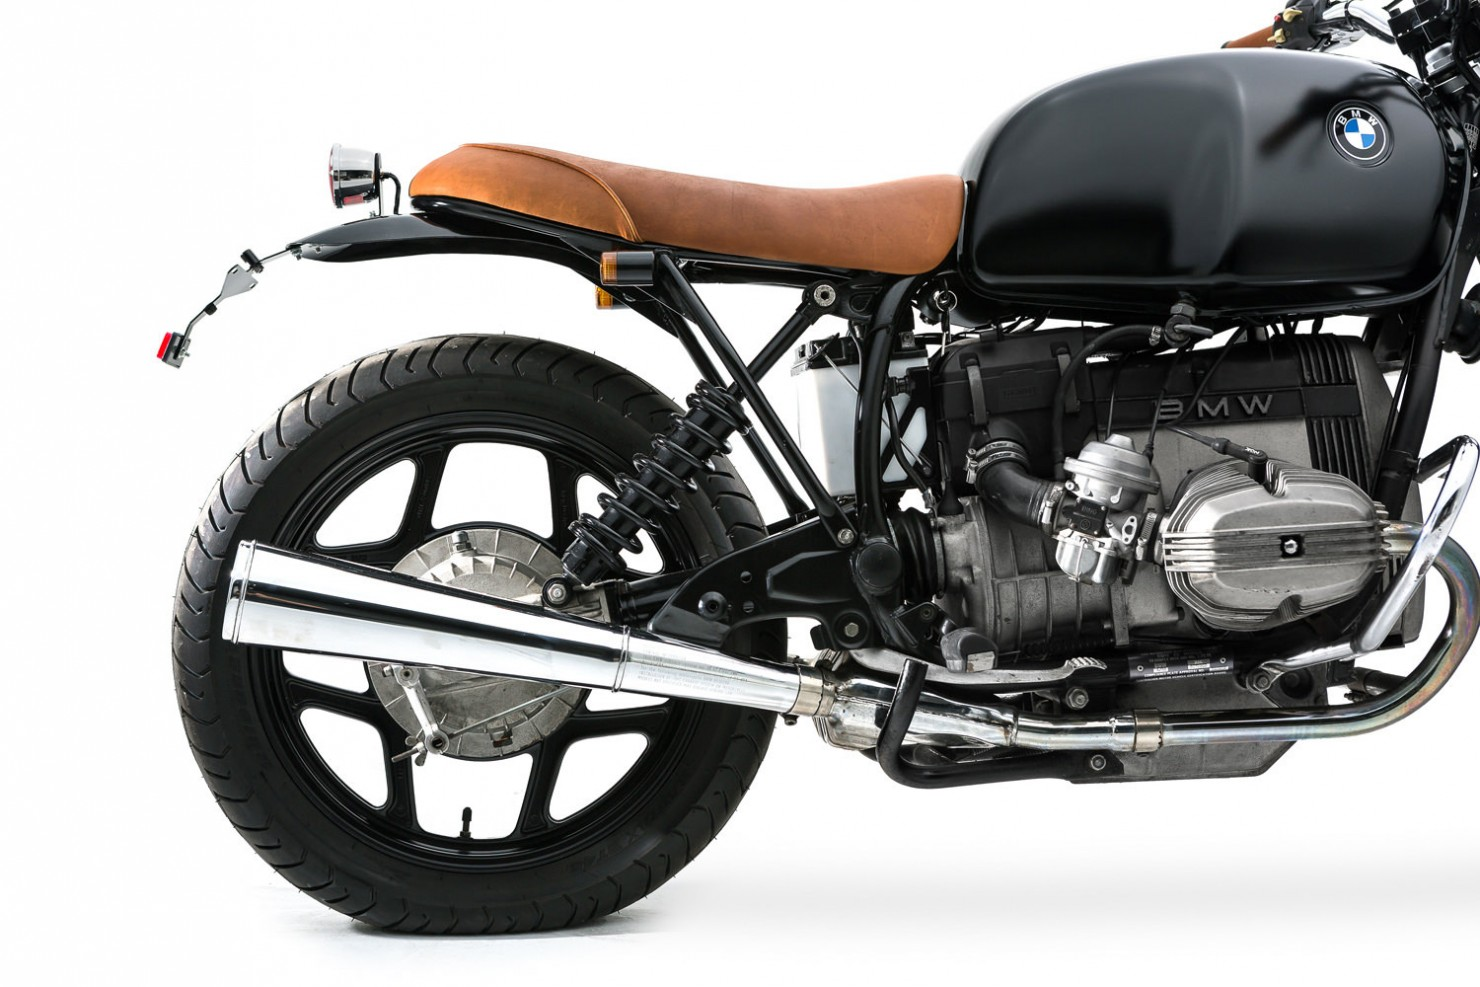 BMW-R65-Motorcycle-7